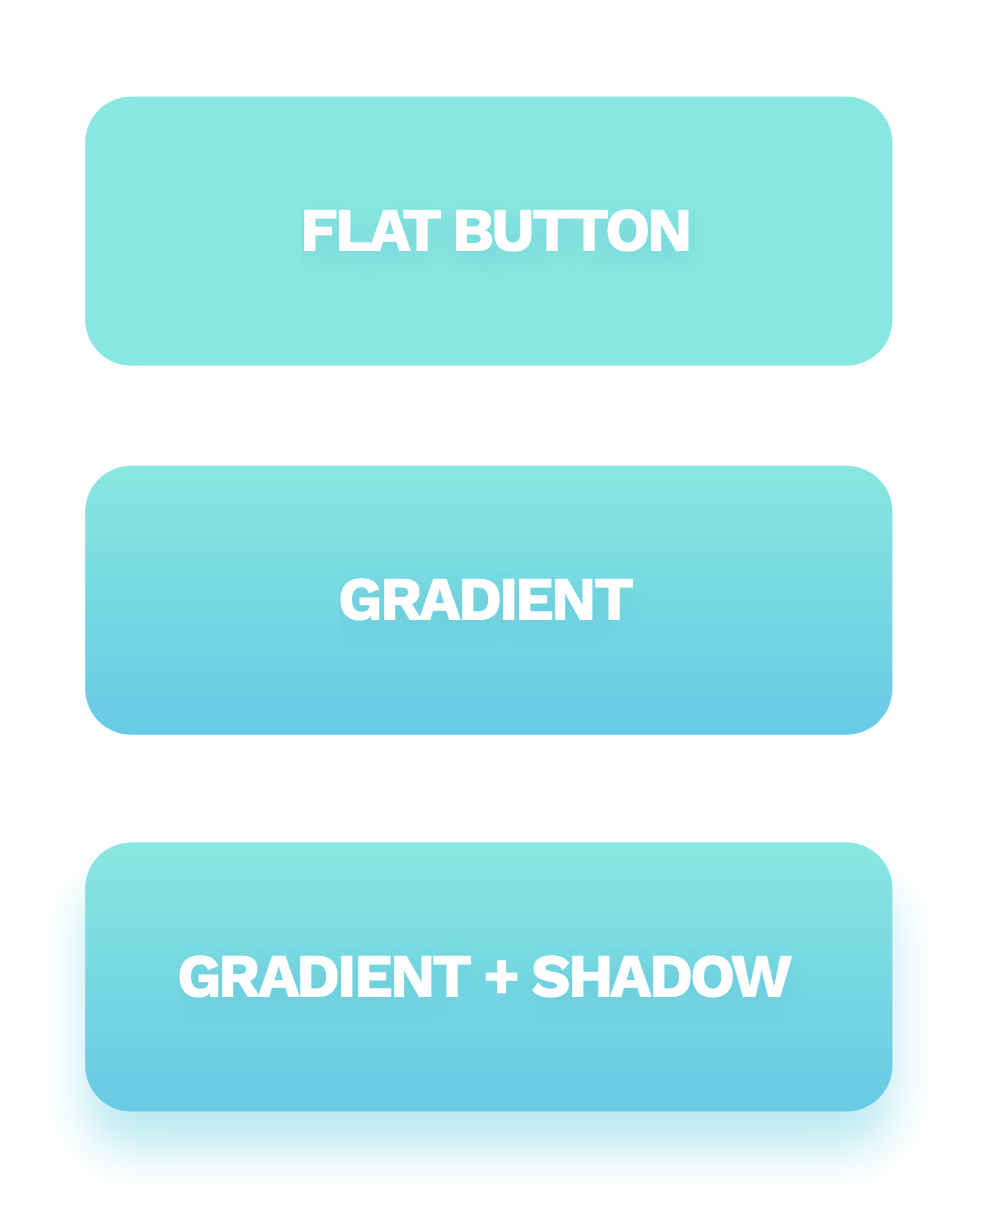 Three types of buttons